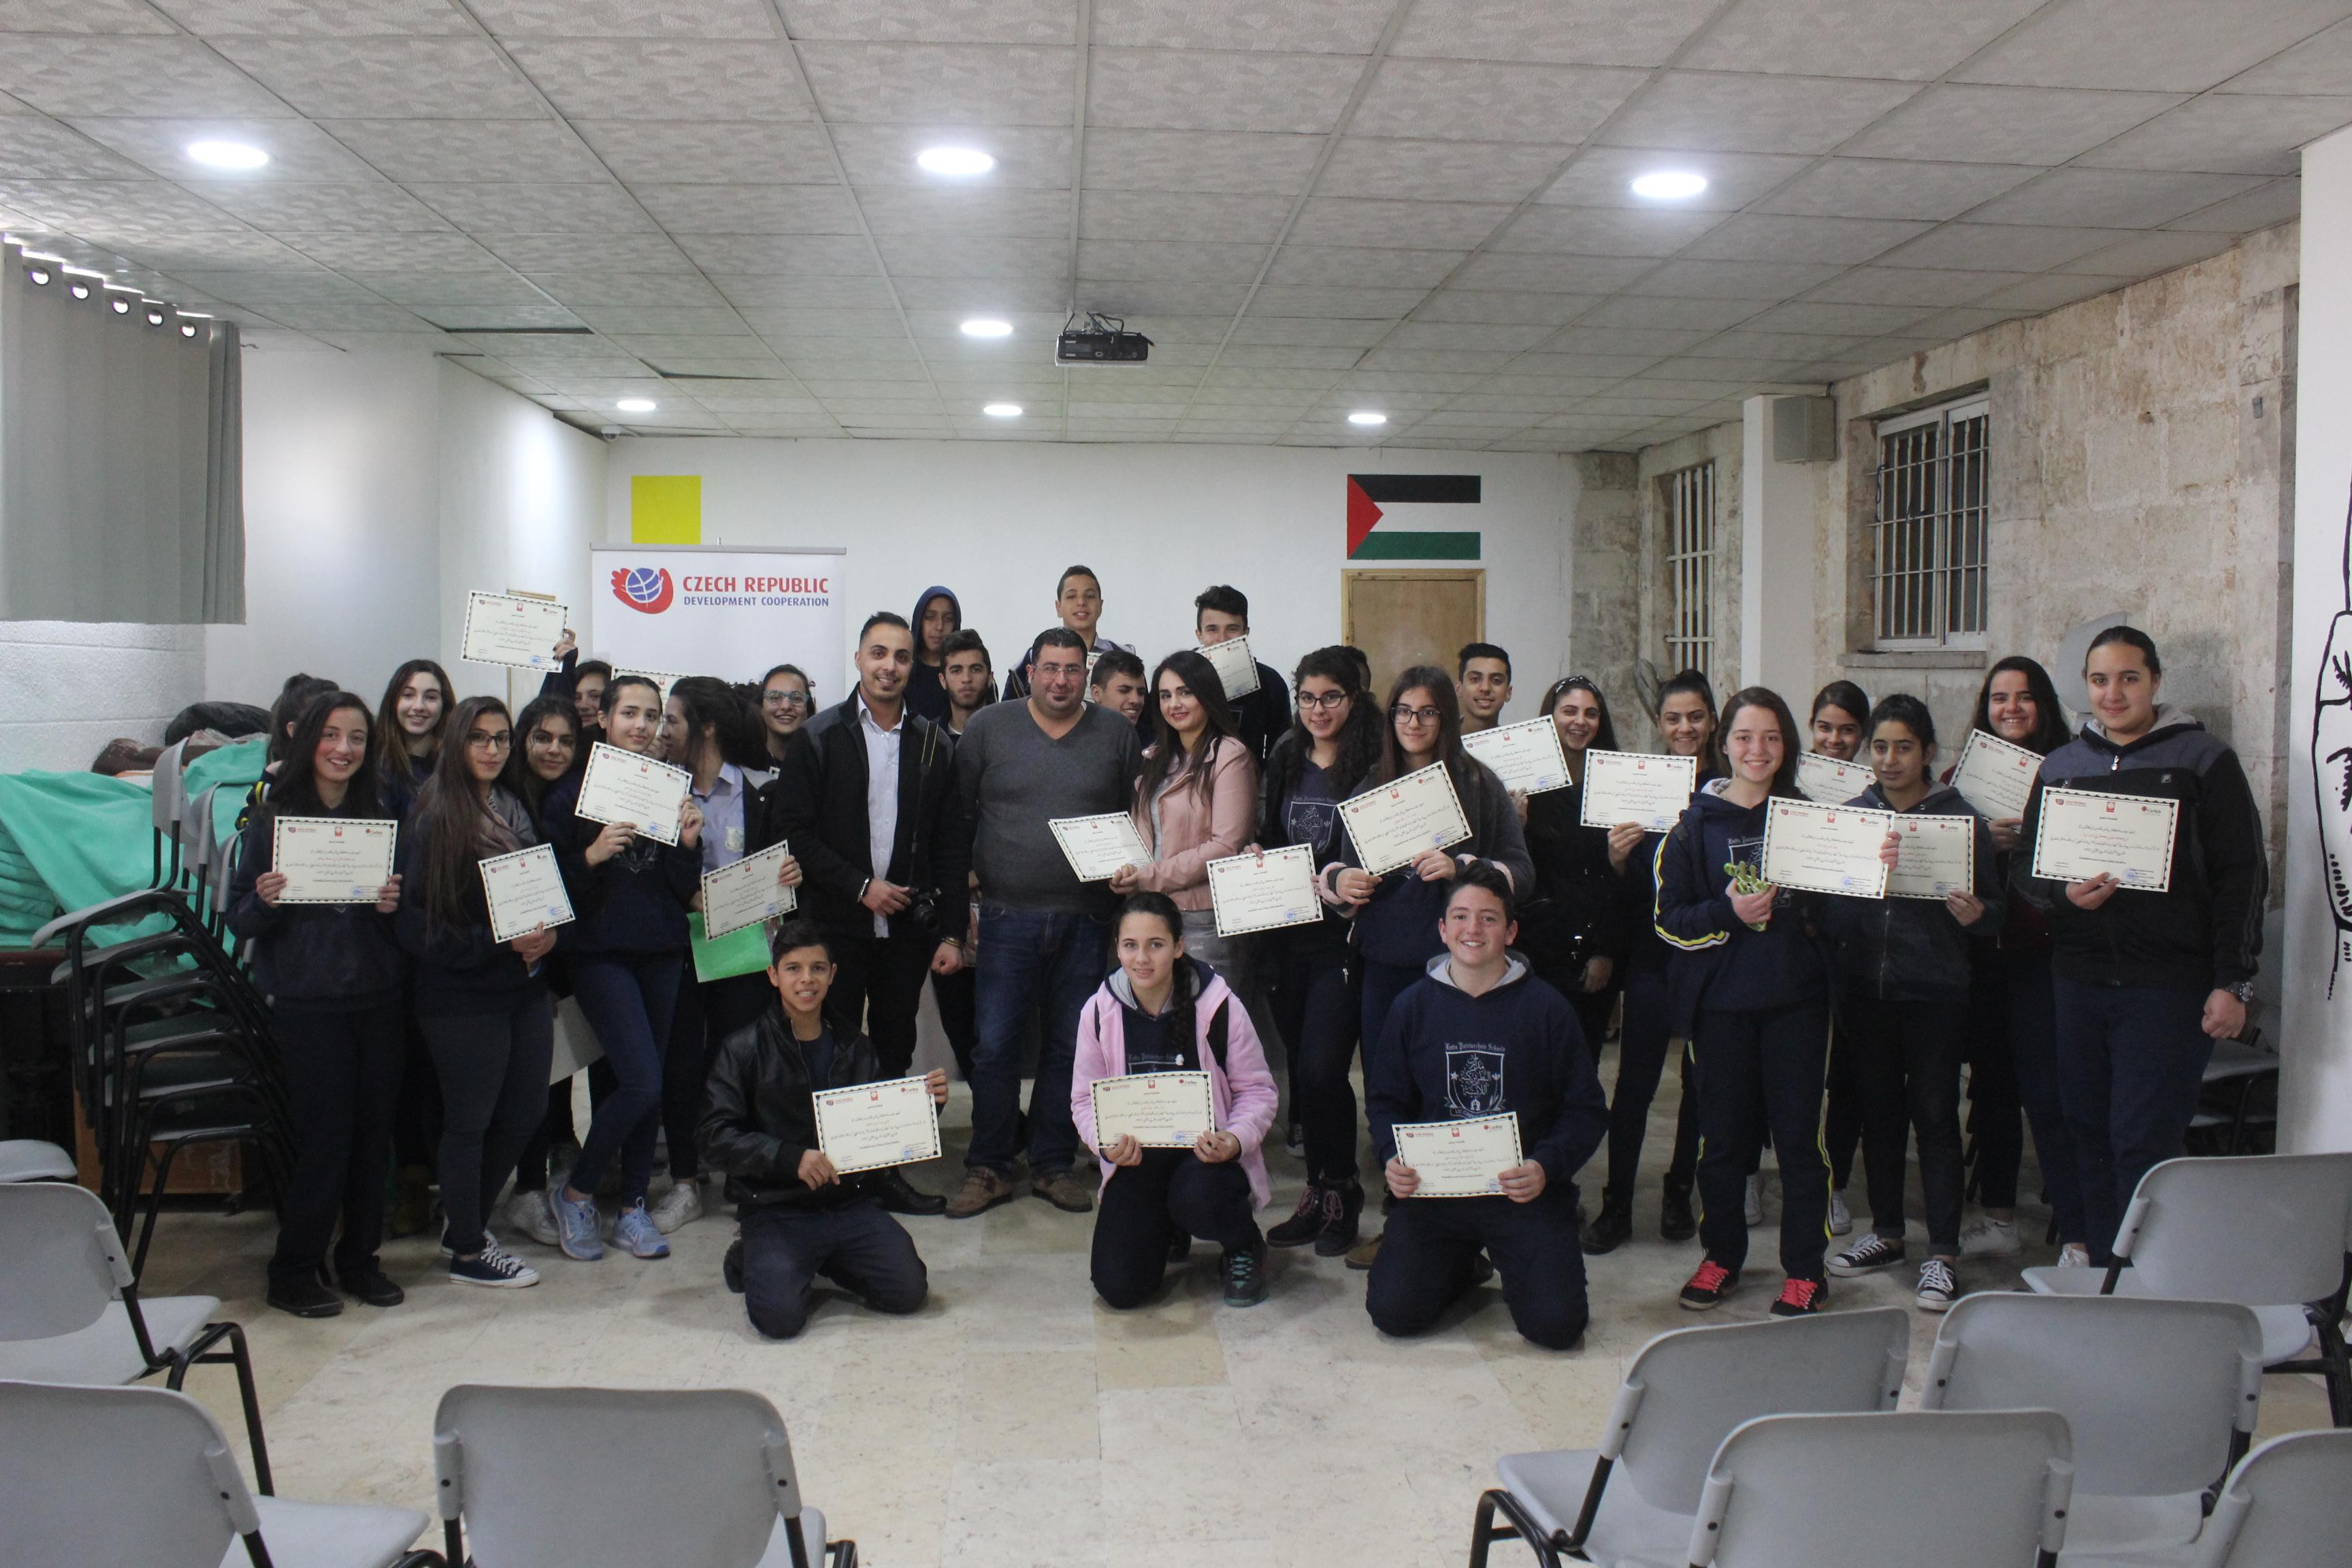 Beit Jala: Life skills workshop in cooperation with Caritas Jerusalem